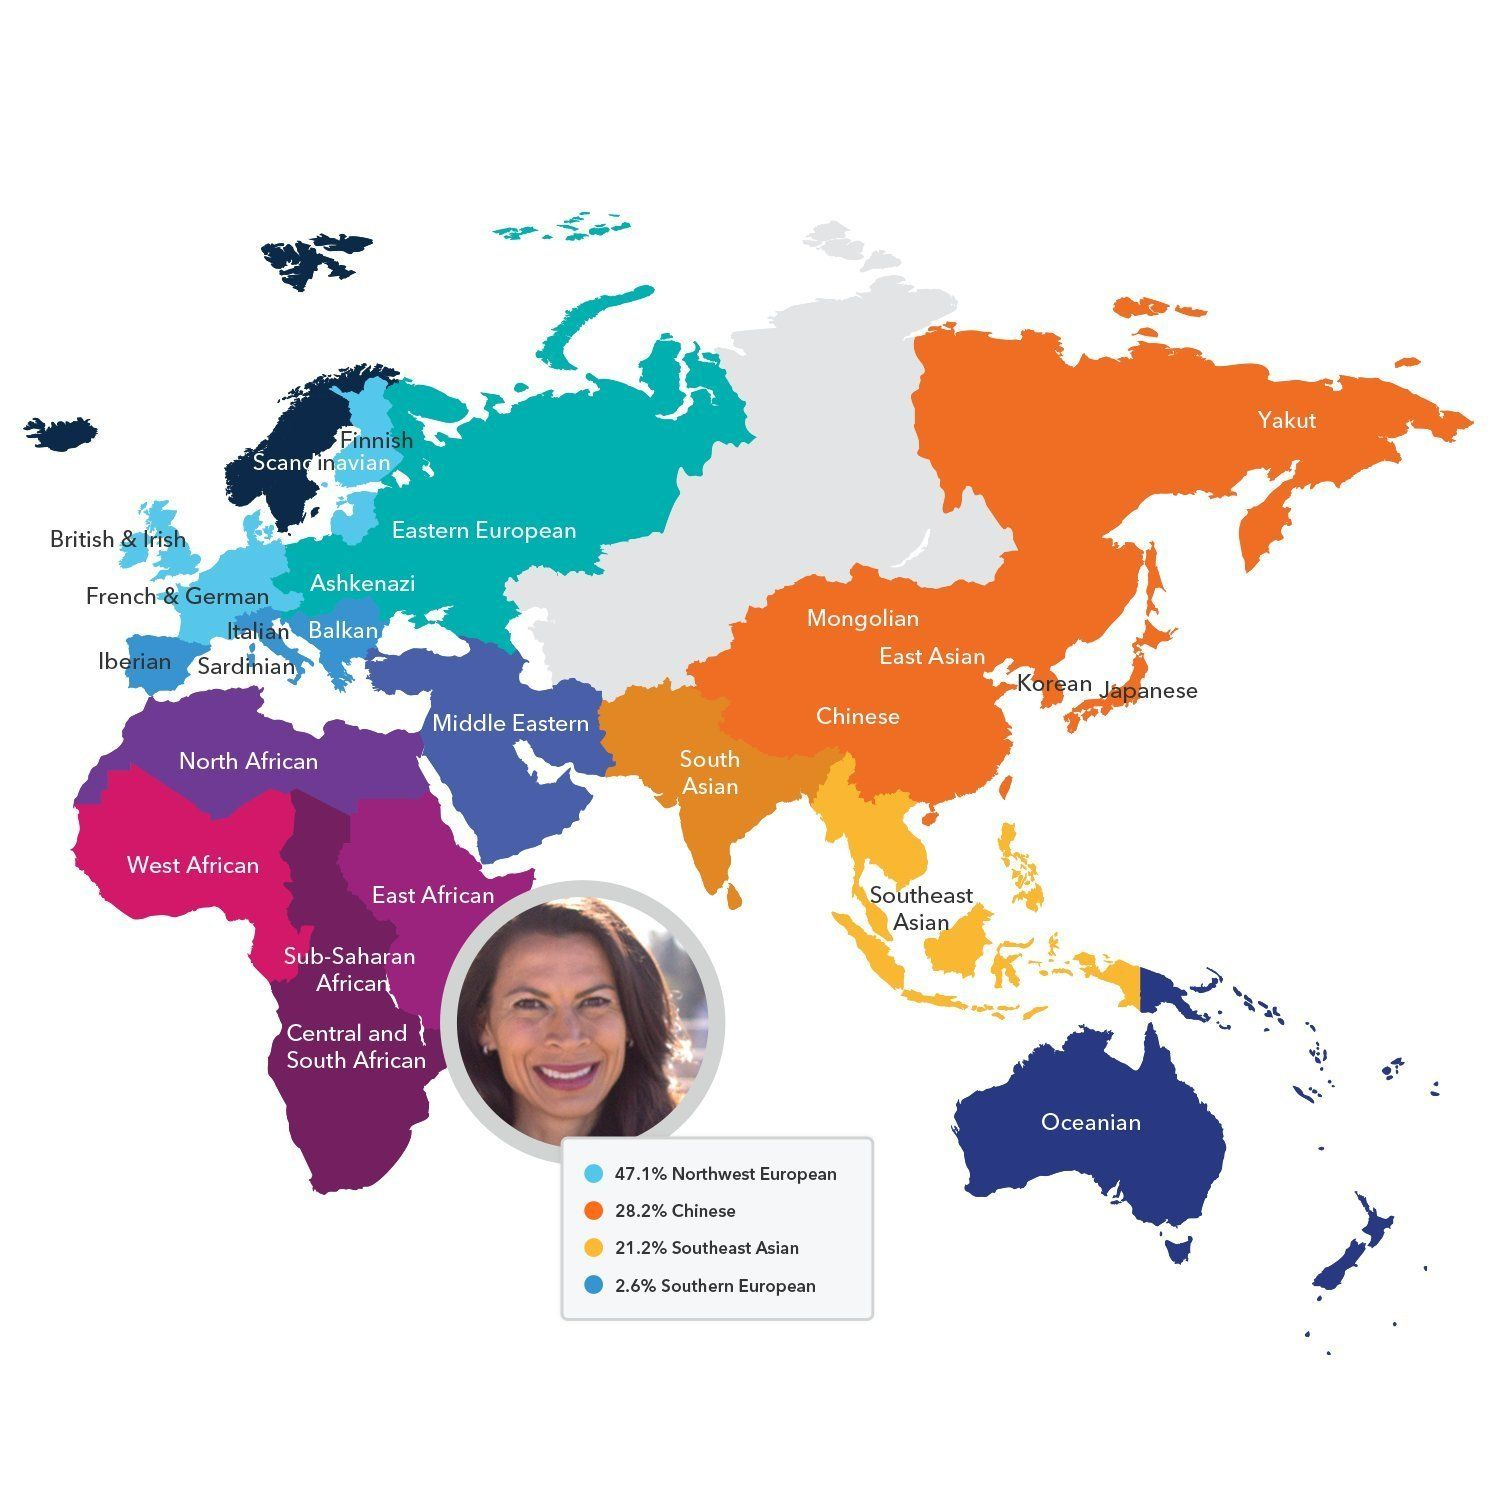 23andme Dna Test Ancestry Personal Genetic Service Save 20 With This Link Http Amzn To 2spv12h Ancestry Dna Test Ancestry Dna Dna Test